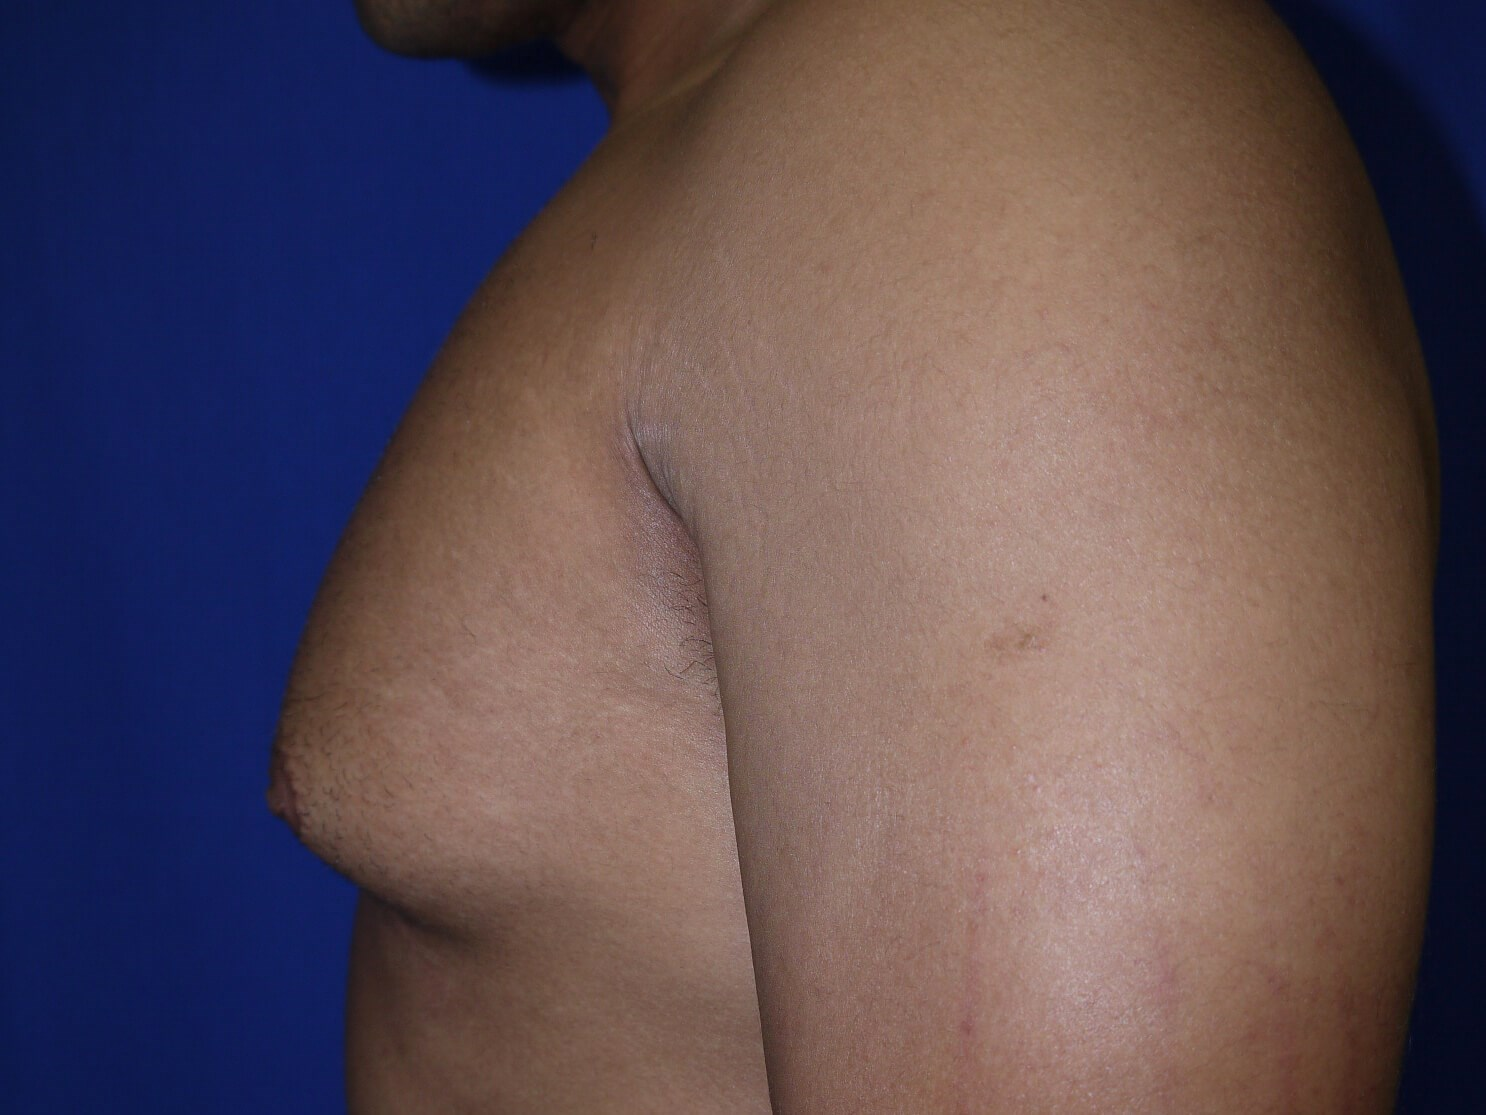 gynecomastia before - Left View